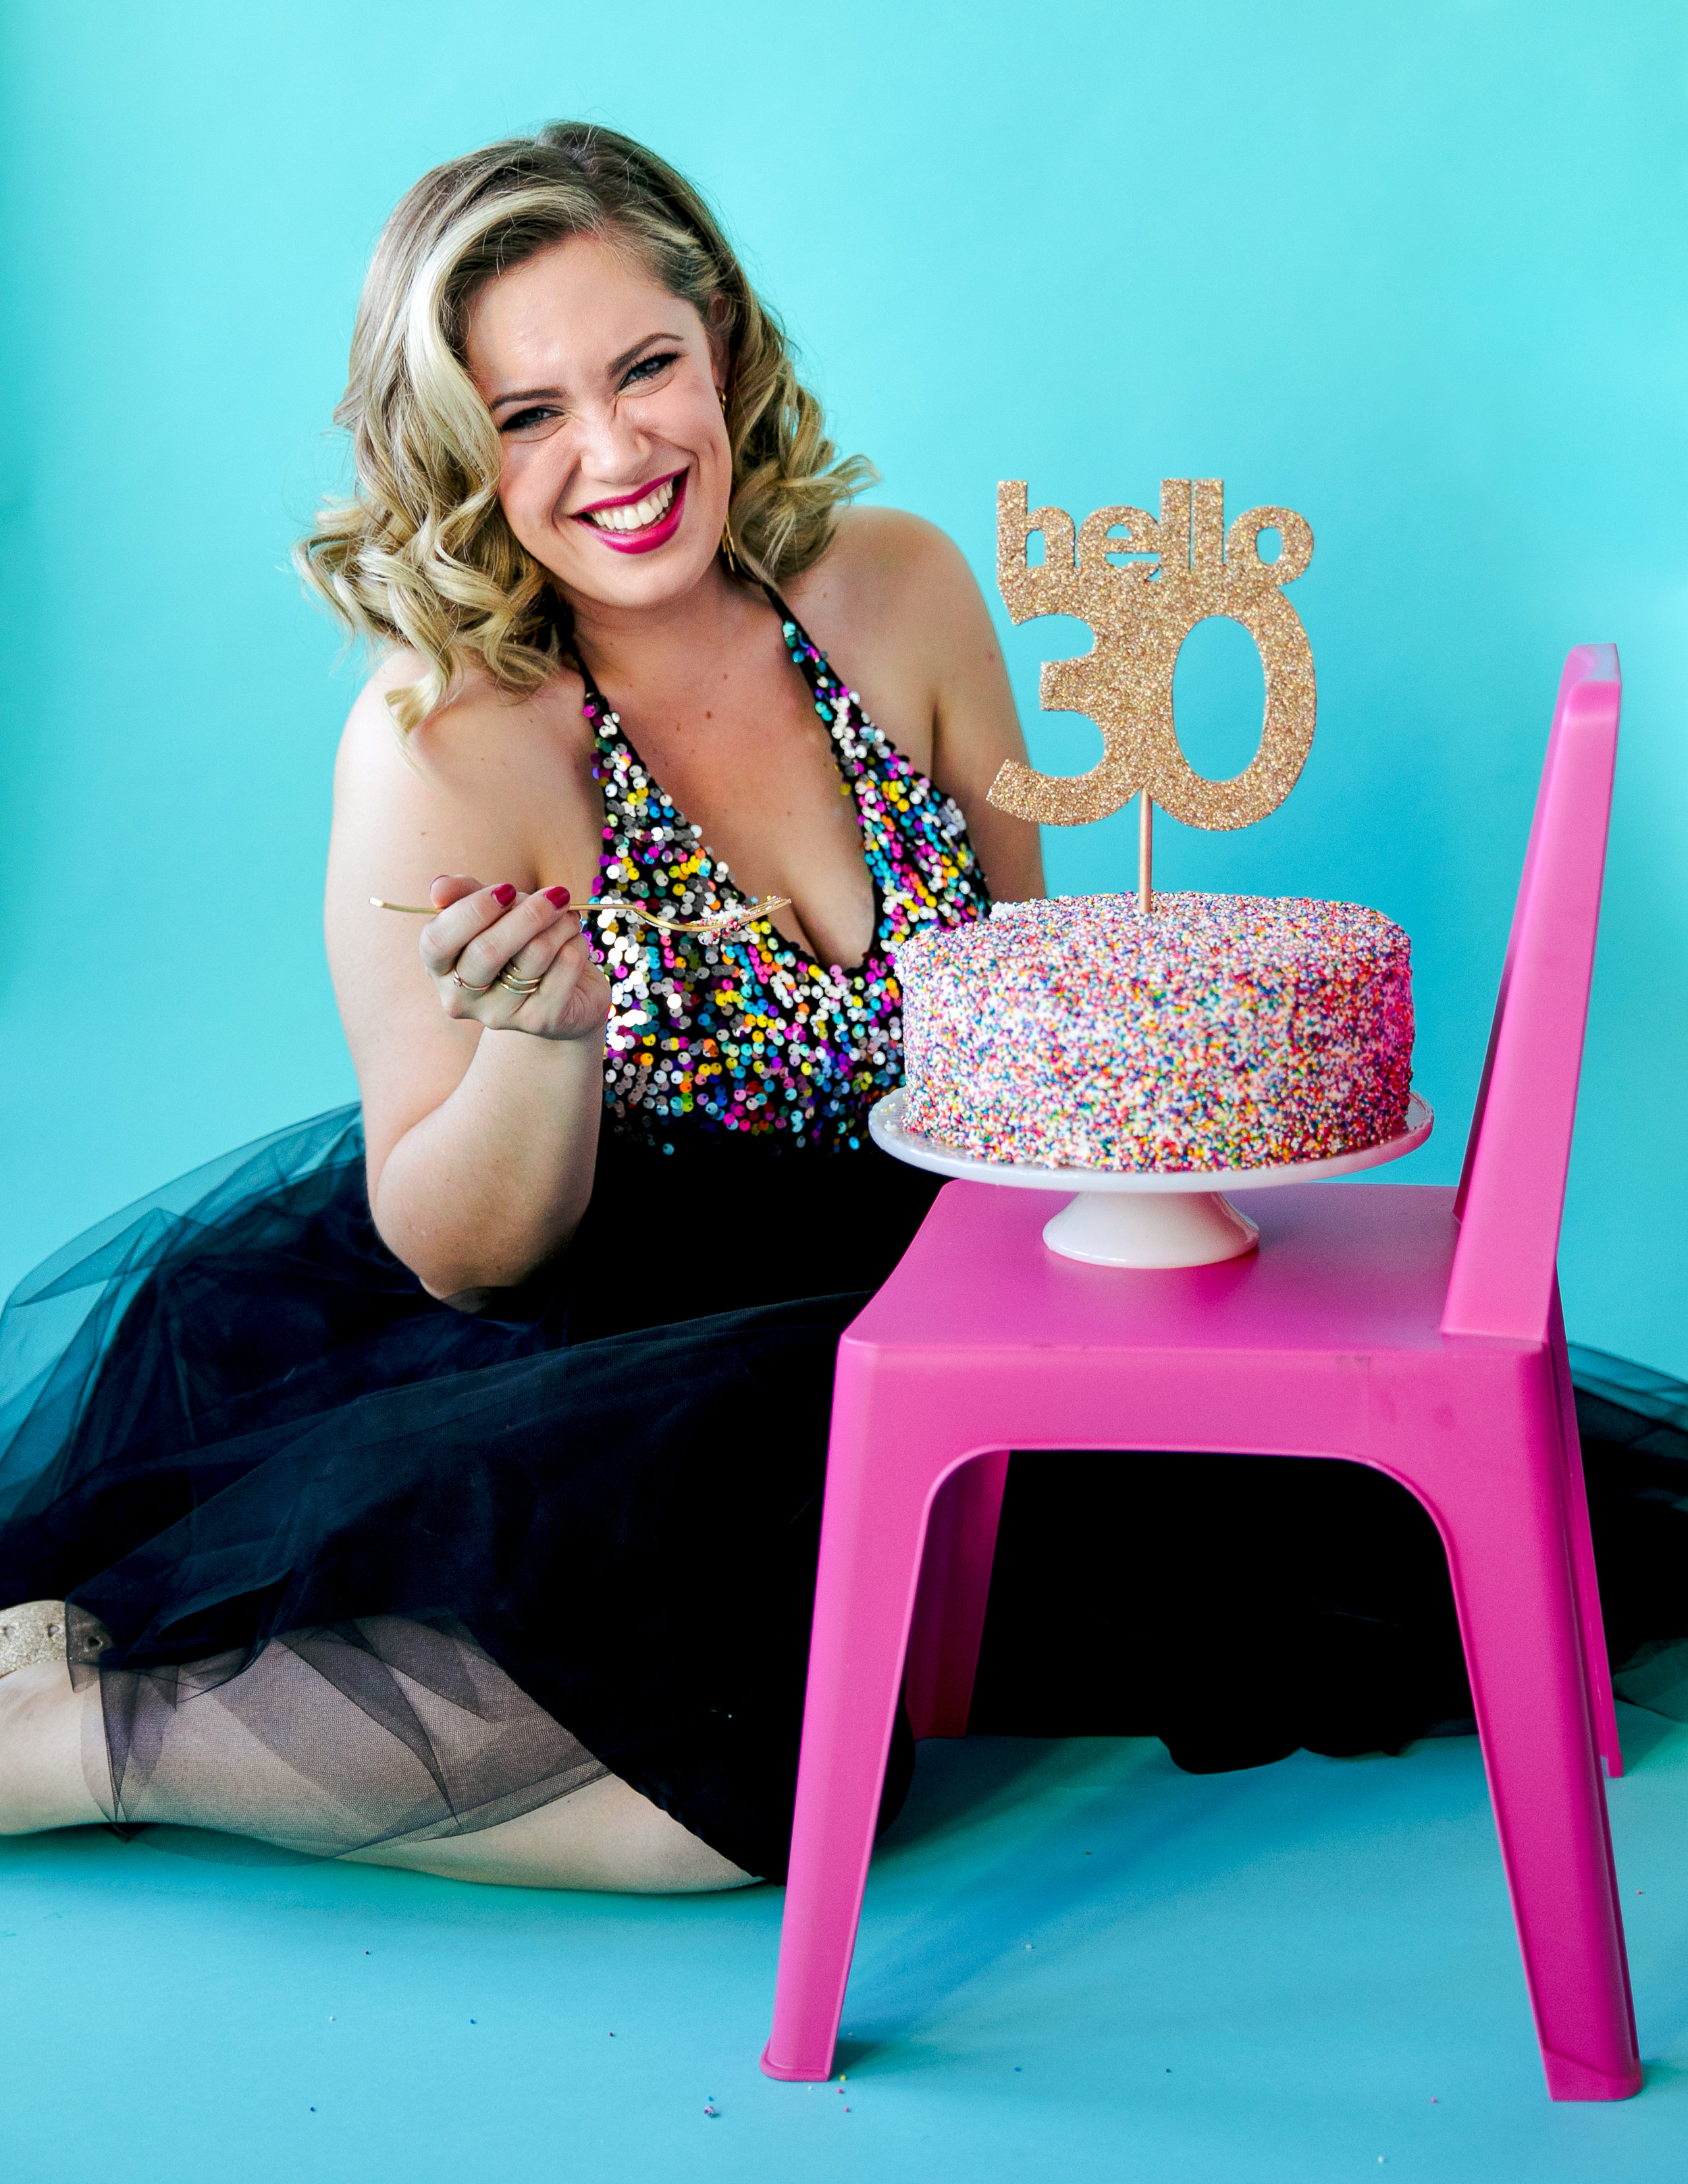 san jose california makeup artist kim baker beauty's milestone 30th birthday photoshoot with confetti cake and gold glitter cake topper teal background black tulle skirt and sequin rainbow top